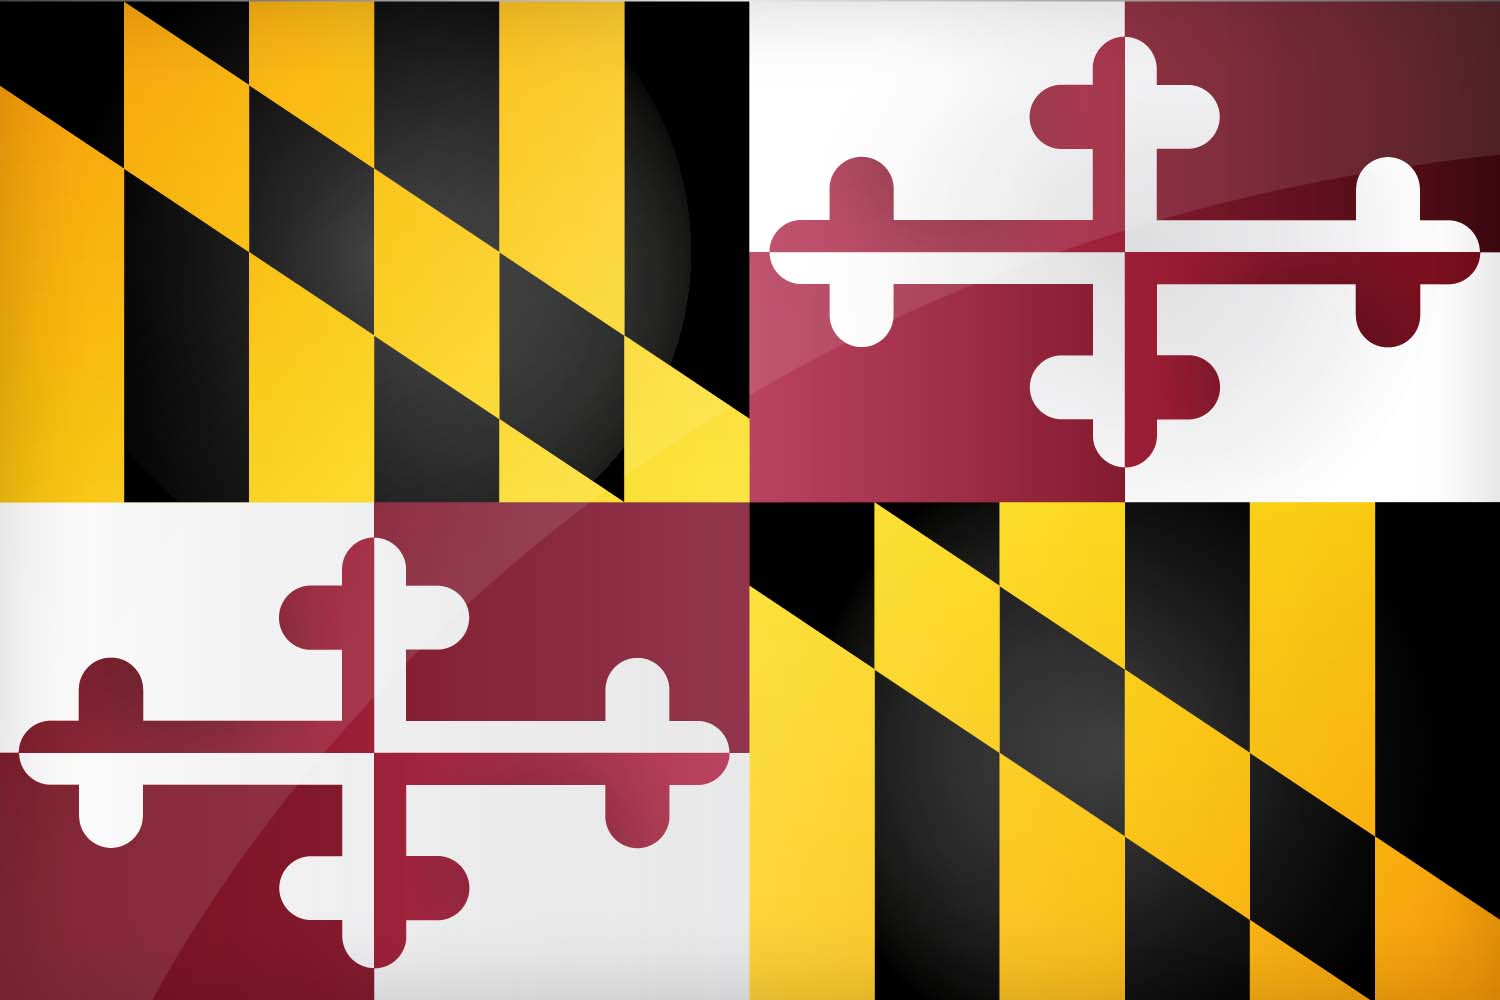 High Resolution Flag: Download The Official Maryland's Flag